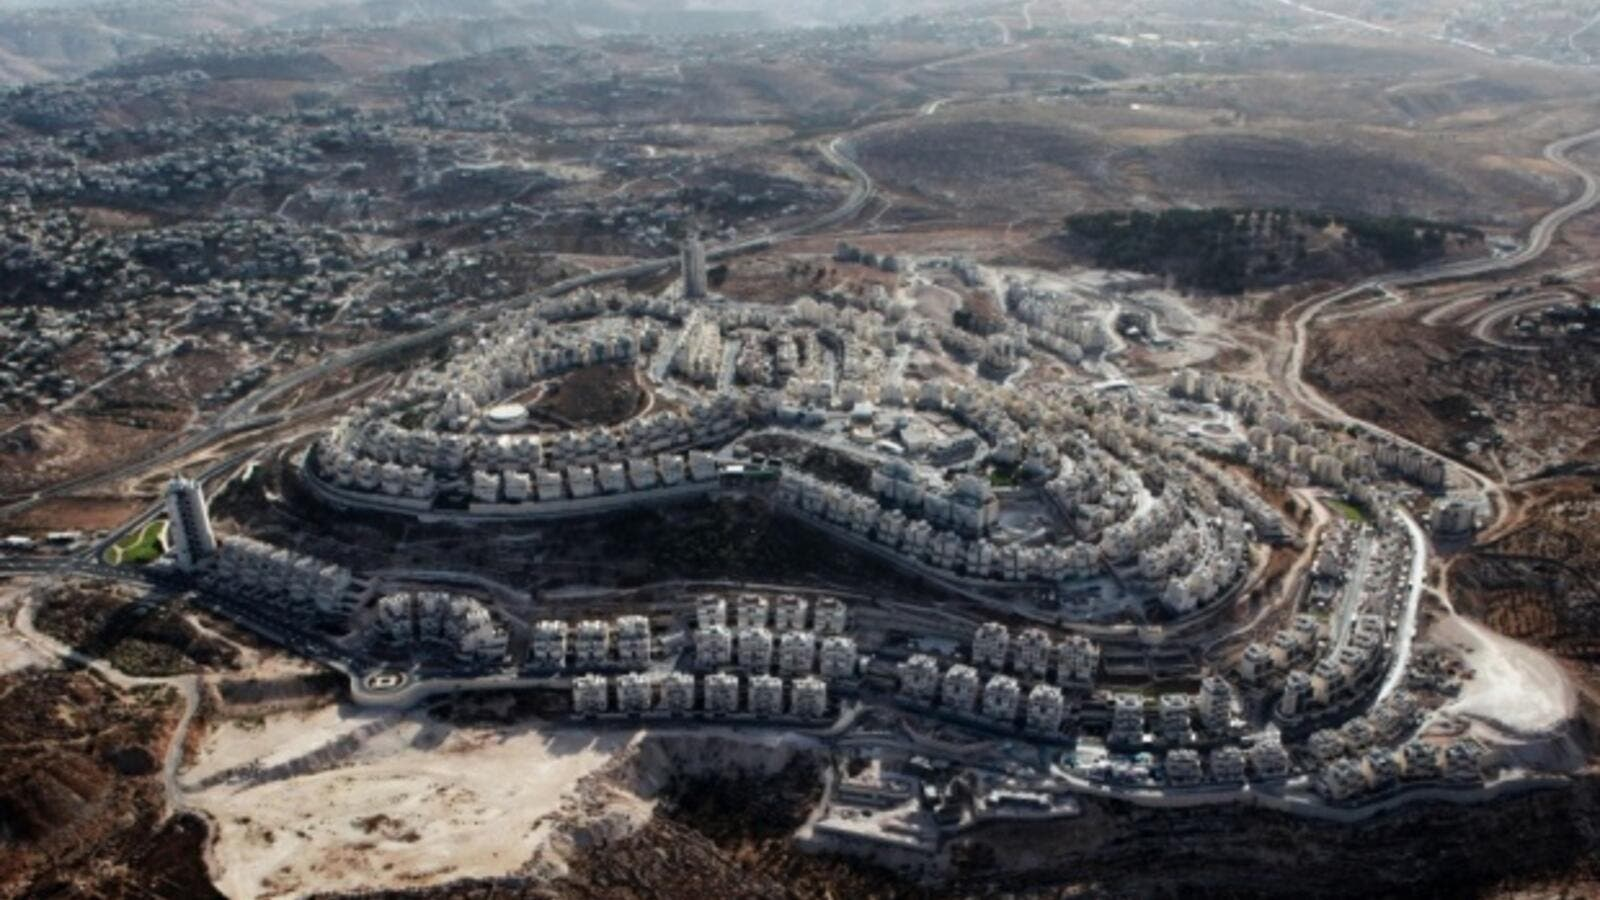 Declared illegal by the UN, Israeli settlements have massively expanded in recent years. (AFP)